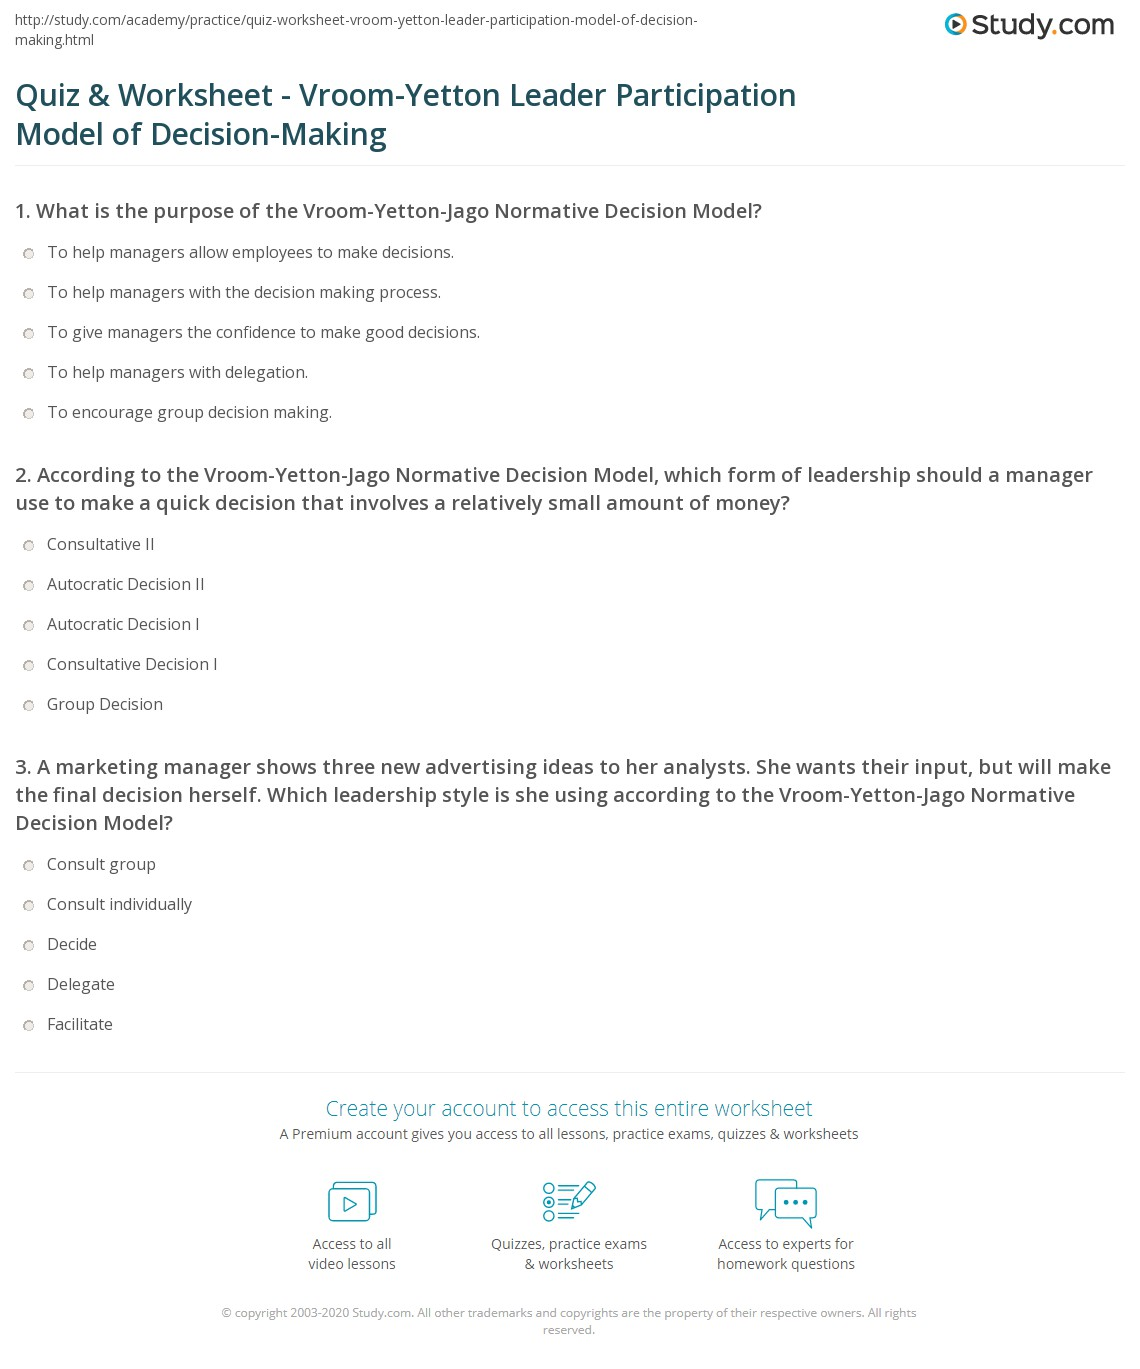 Free Worksheet Making Good Decisions Worksheets quiz worksheet vroom yetton leader participation model of print the rethinking business decision making worksheet